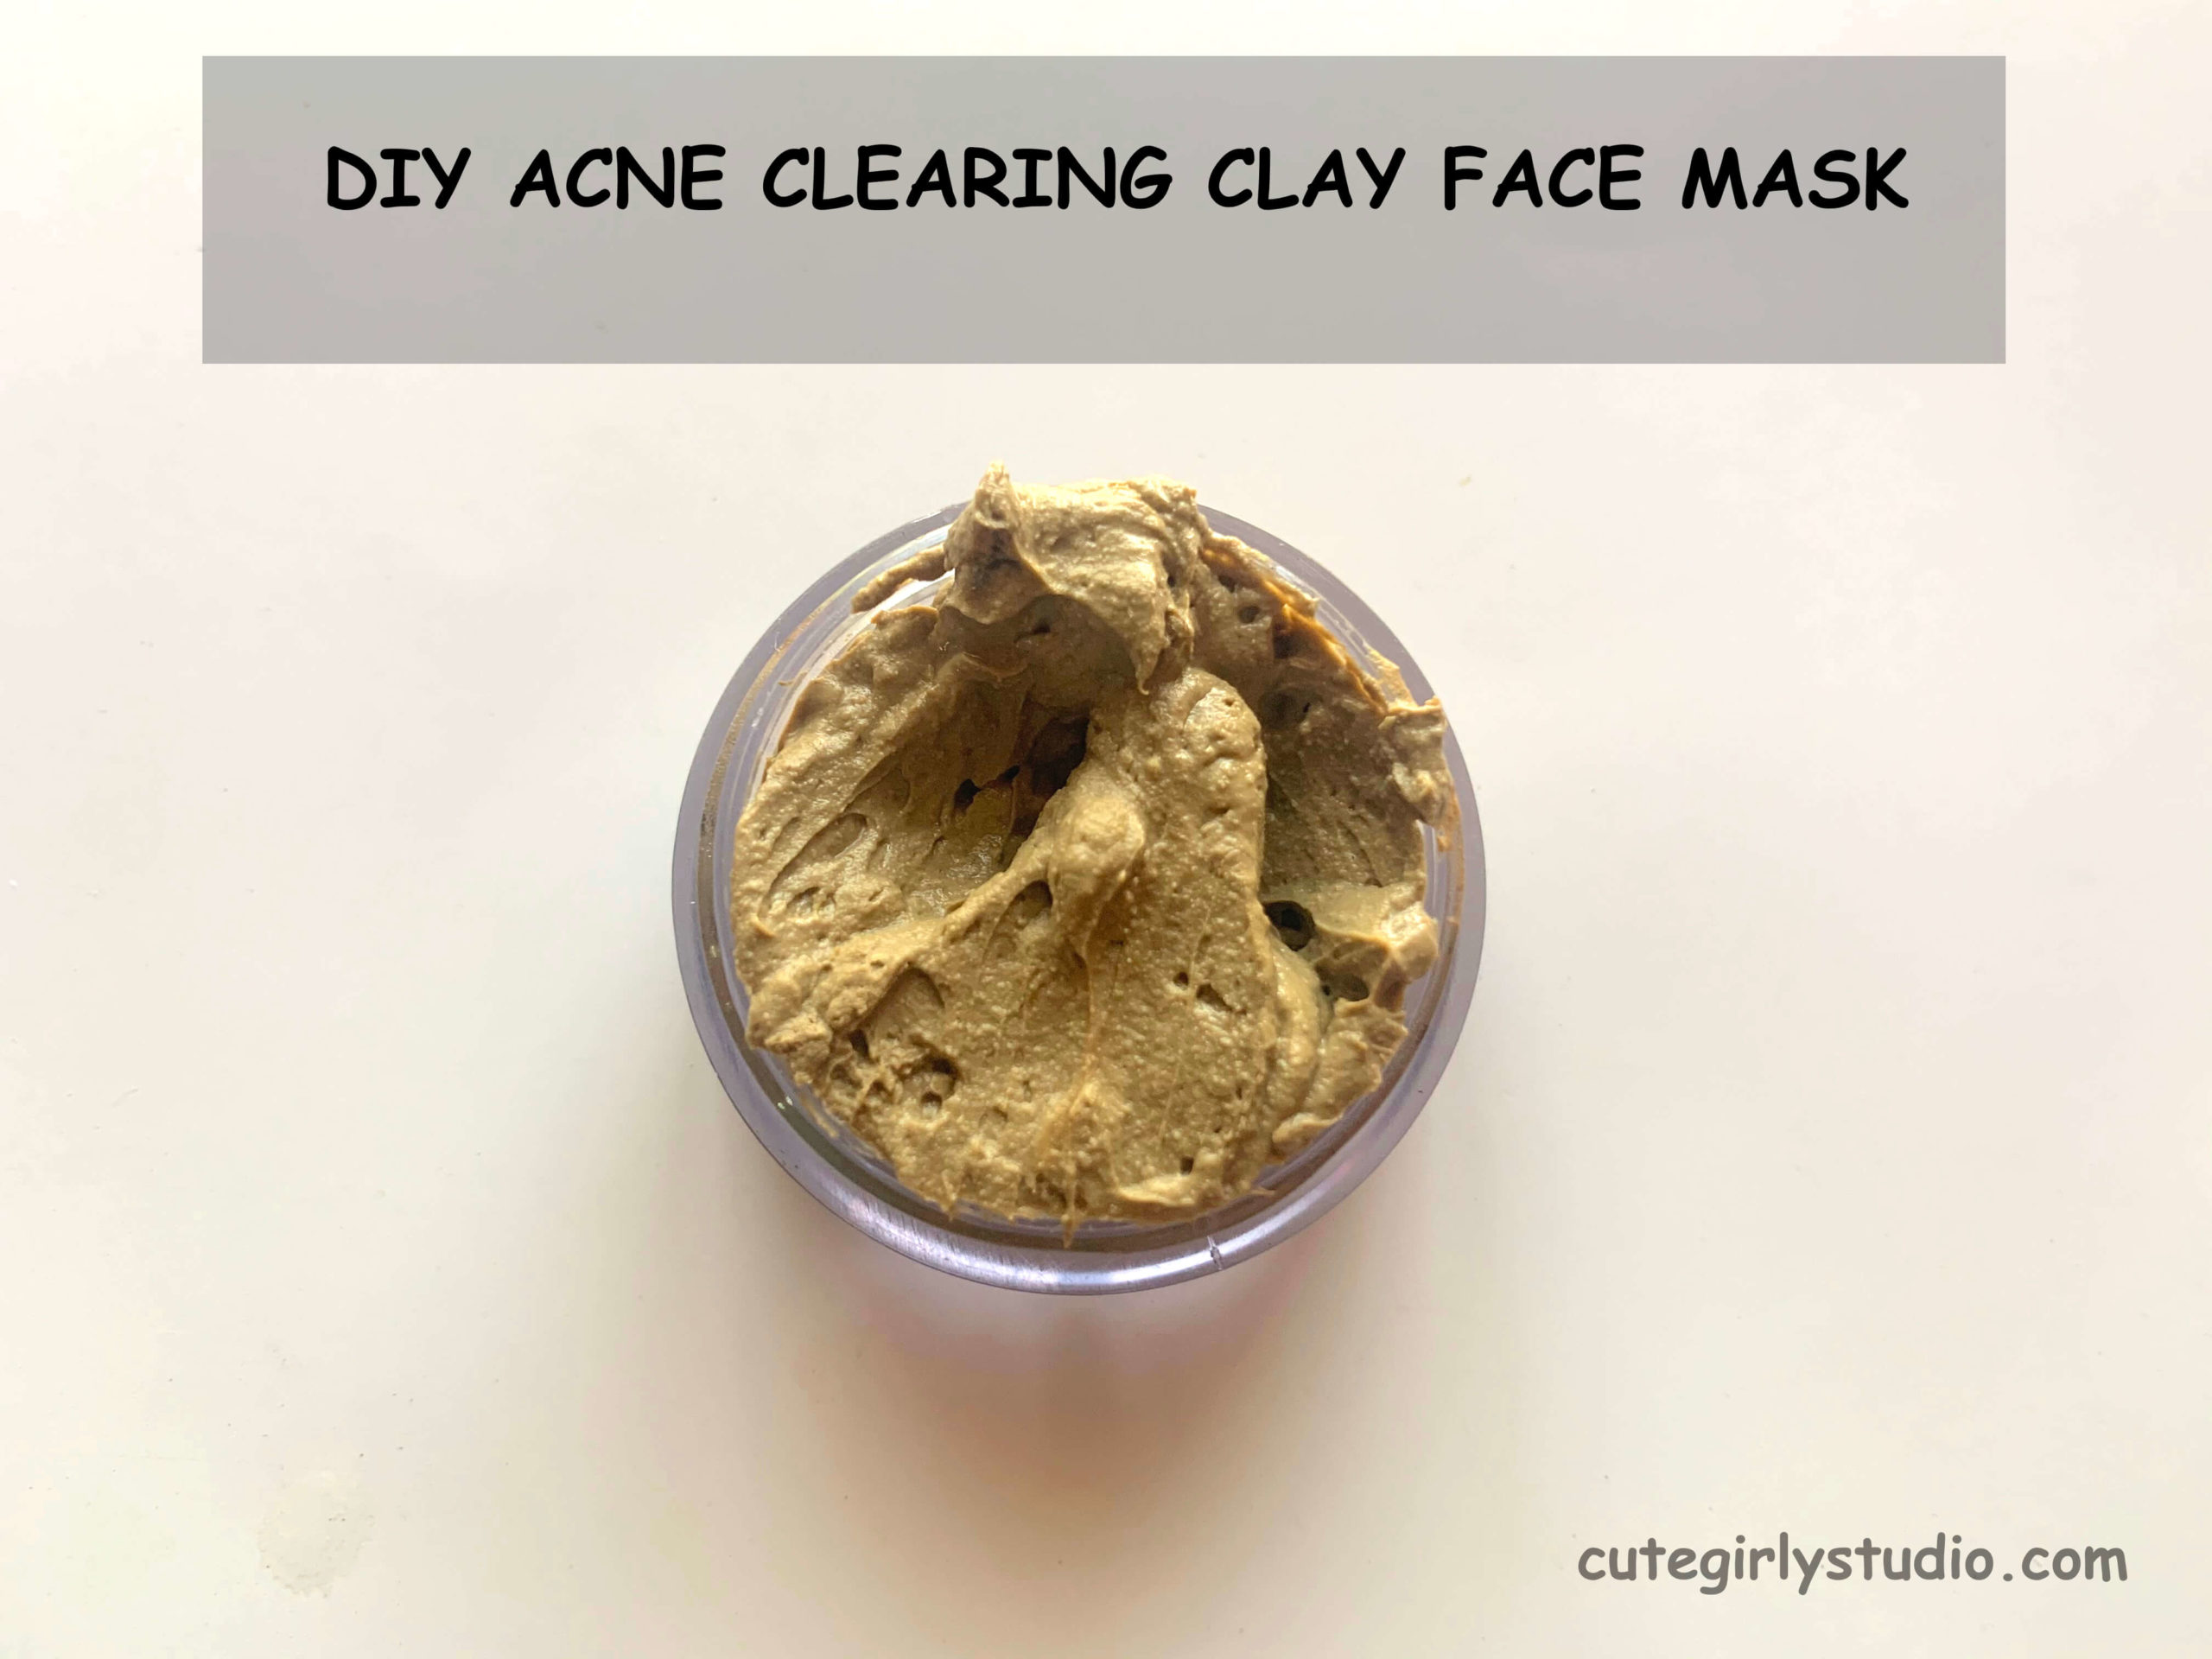 Acne clearing clay face mask